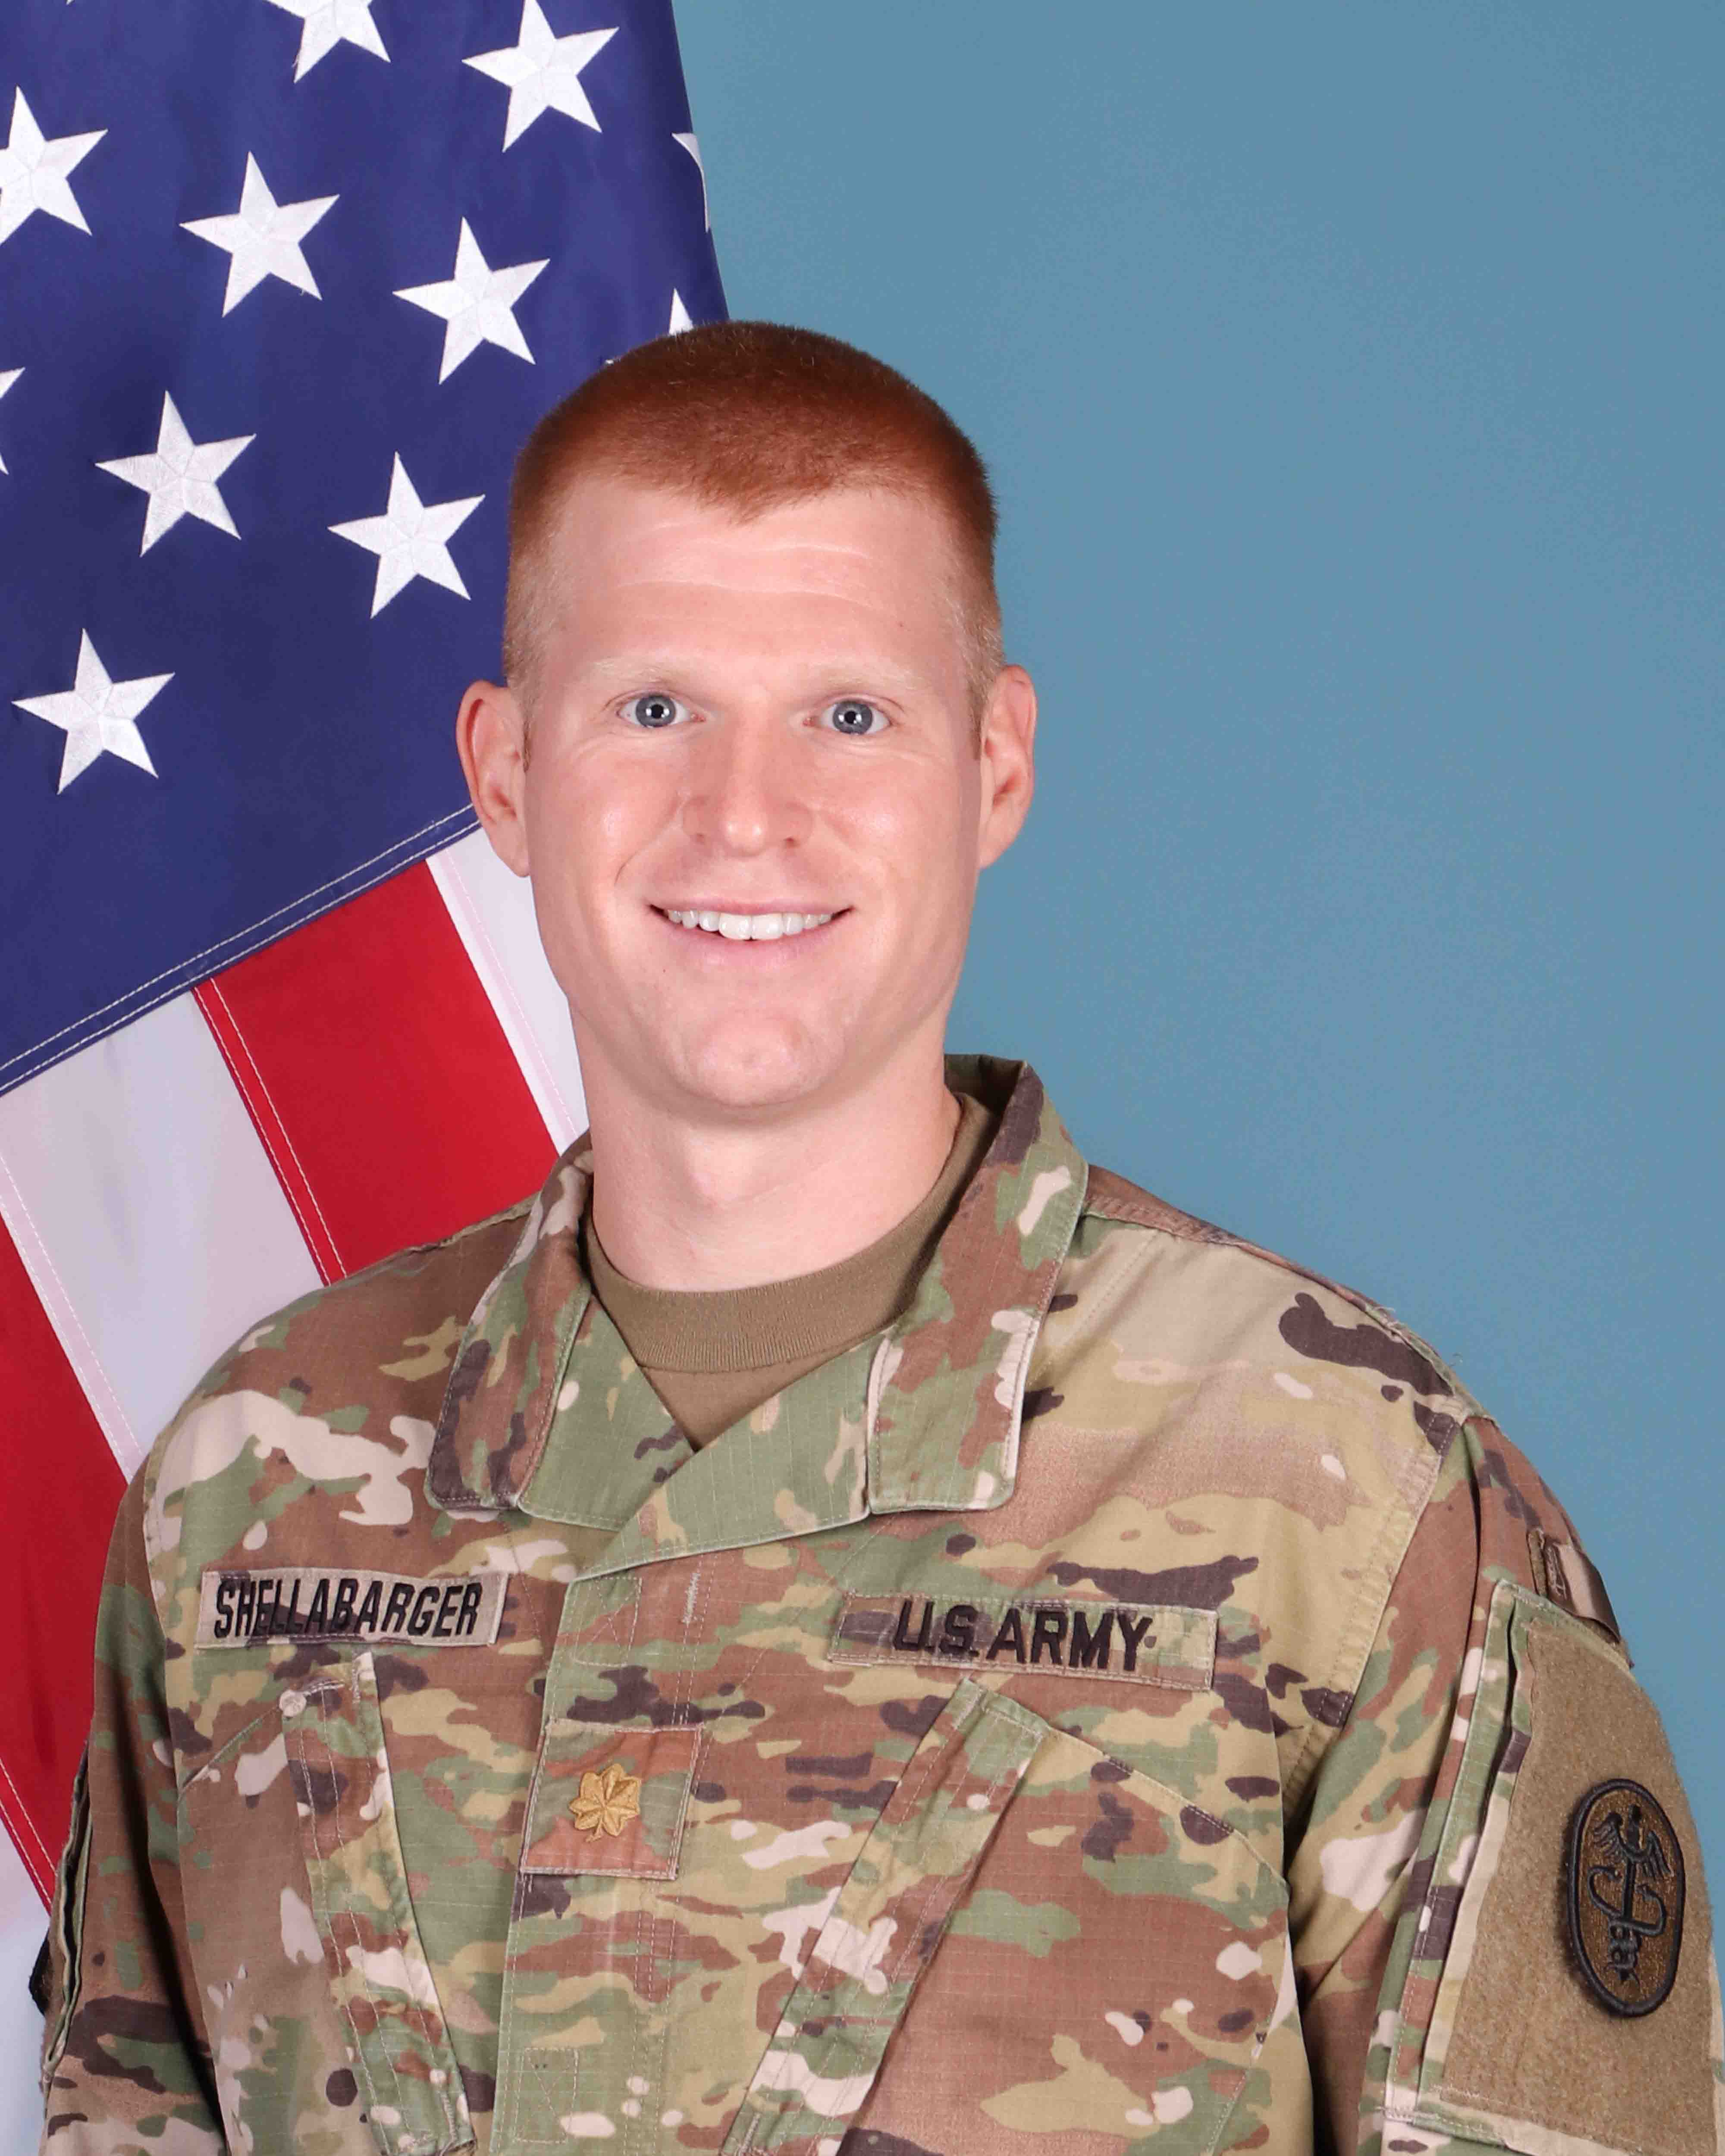 MAJ Peter Shellabarger, DNAP, CRNA, Phase 2 Clinical Site Director: William Beaumont Army Medical Center